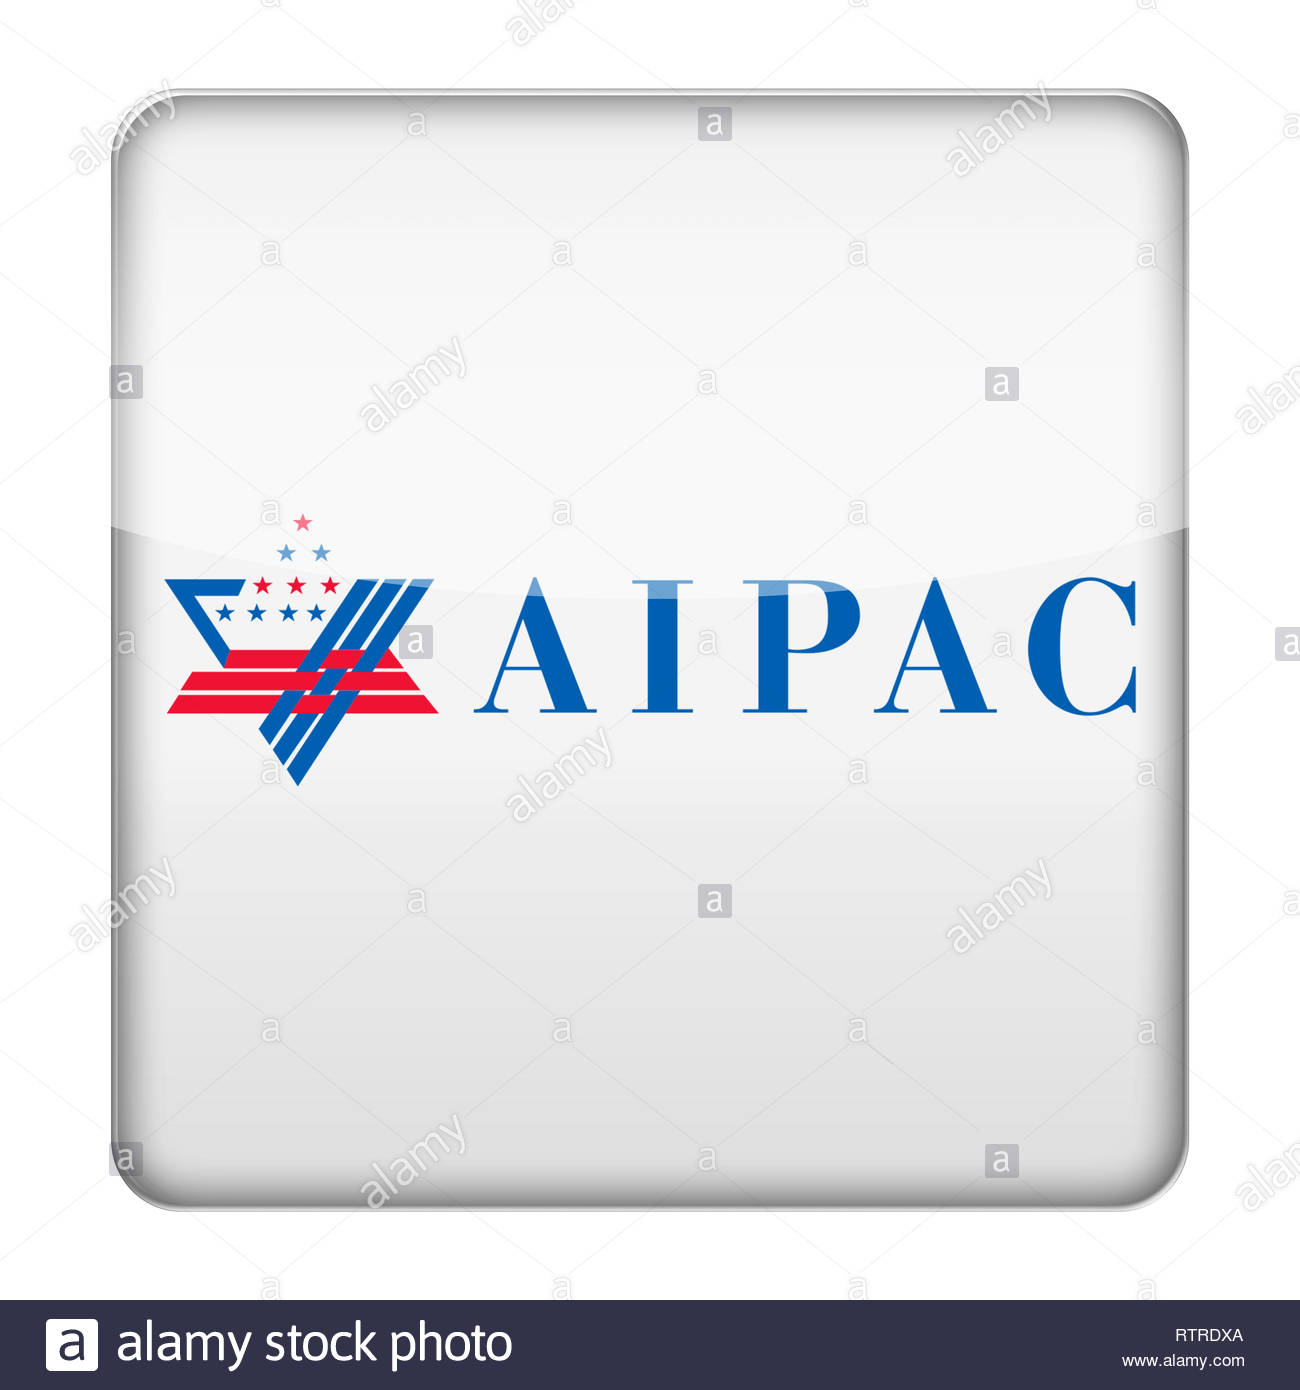 American Israel Public Affairs Committee AIPAC logo - Stock Image